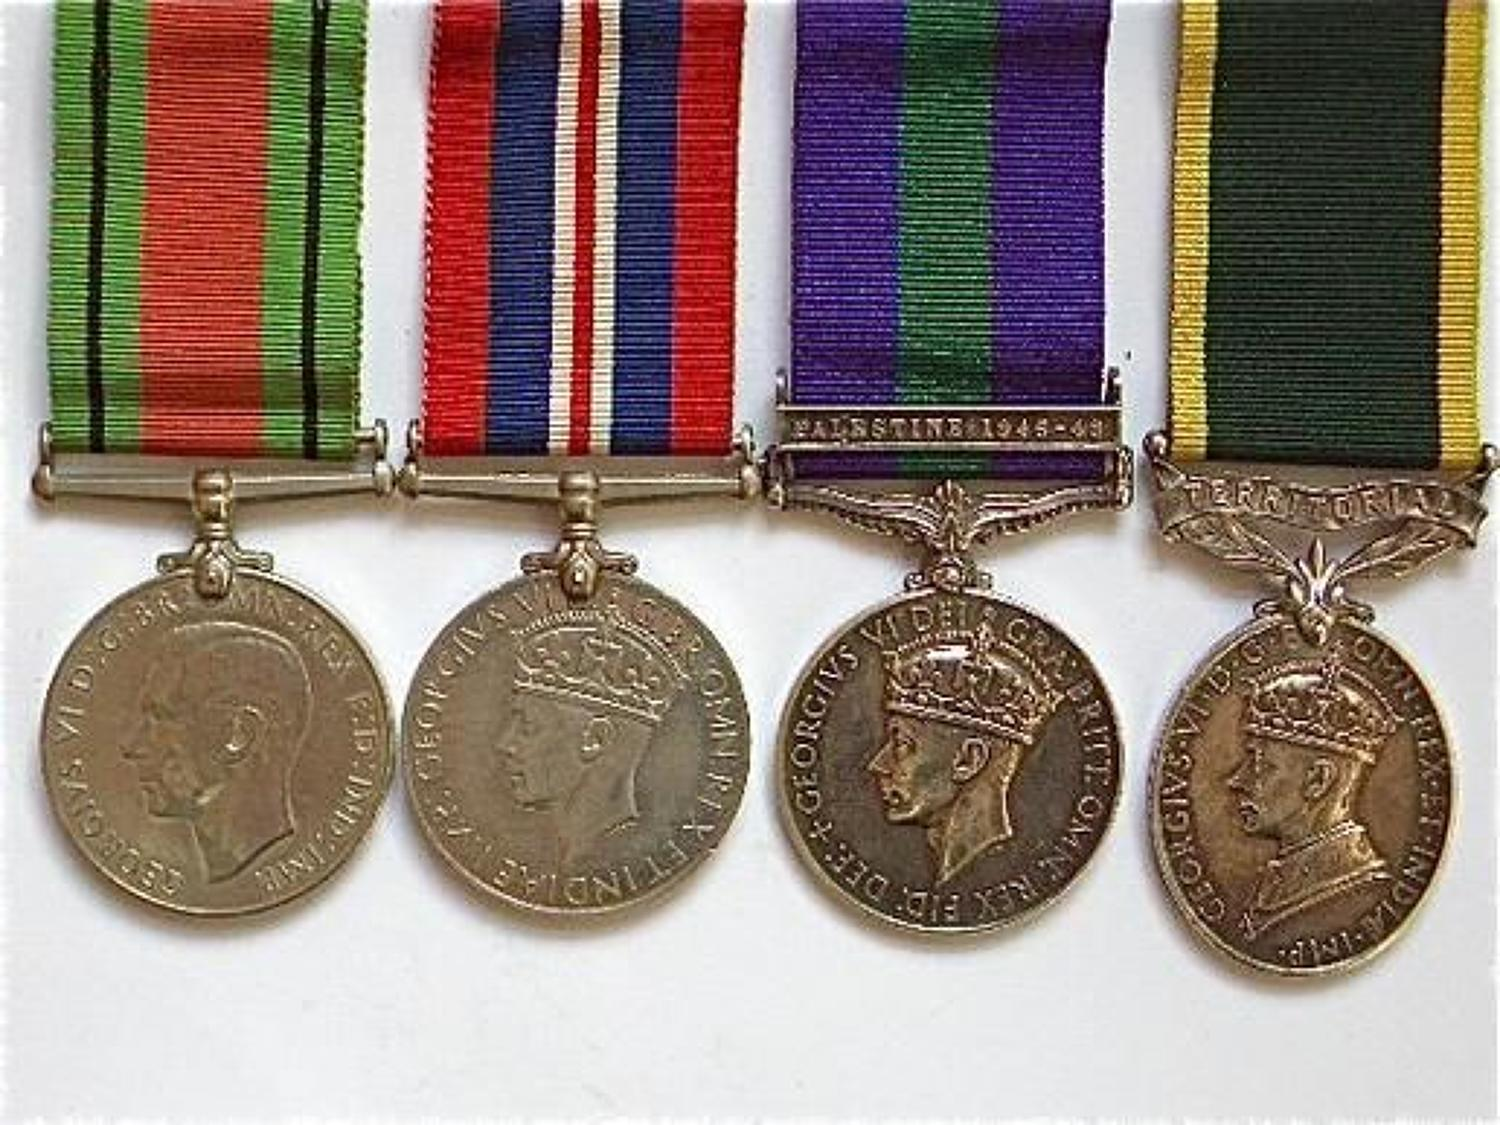 Sherwood Foresters WW2 Territorial Group of Four